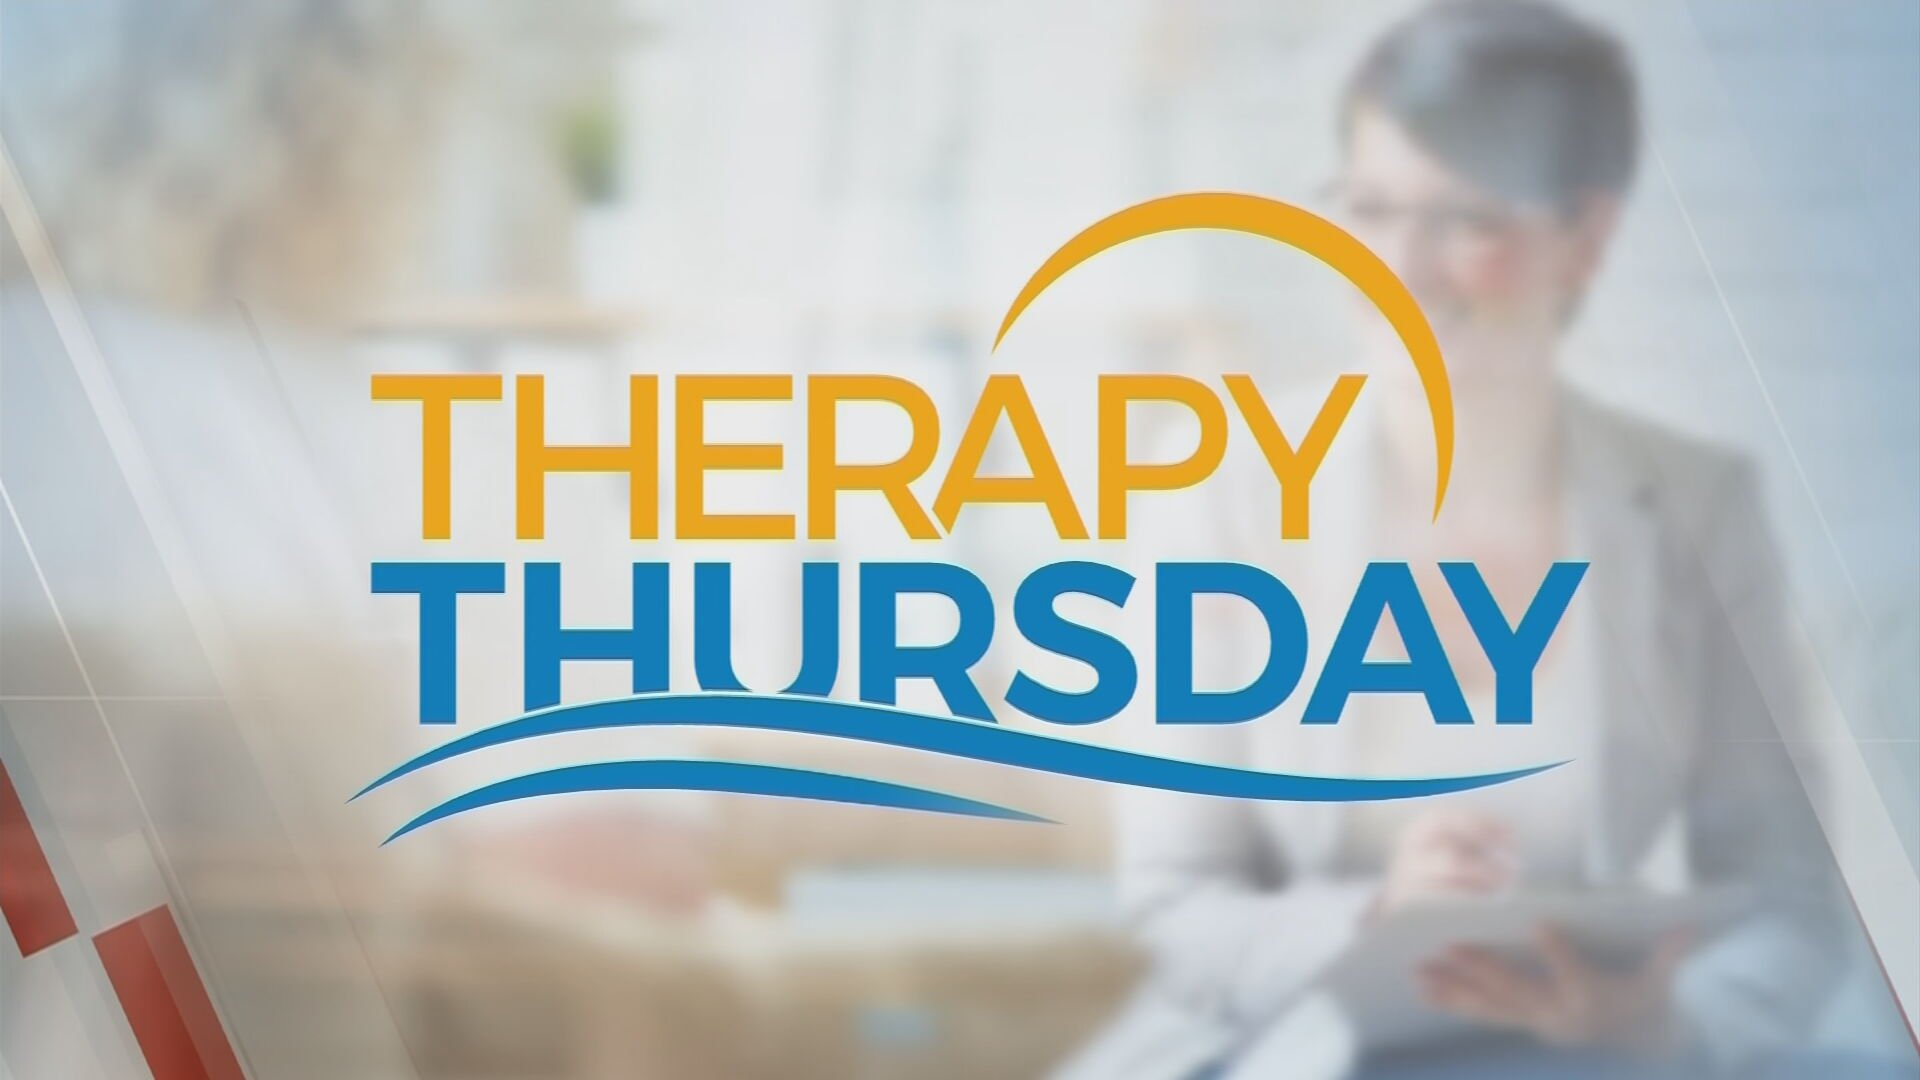 Therapy Thursday: Online Learning & Vacations In The Pandemic